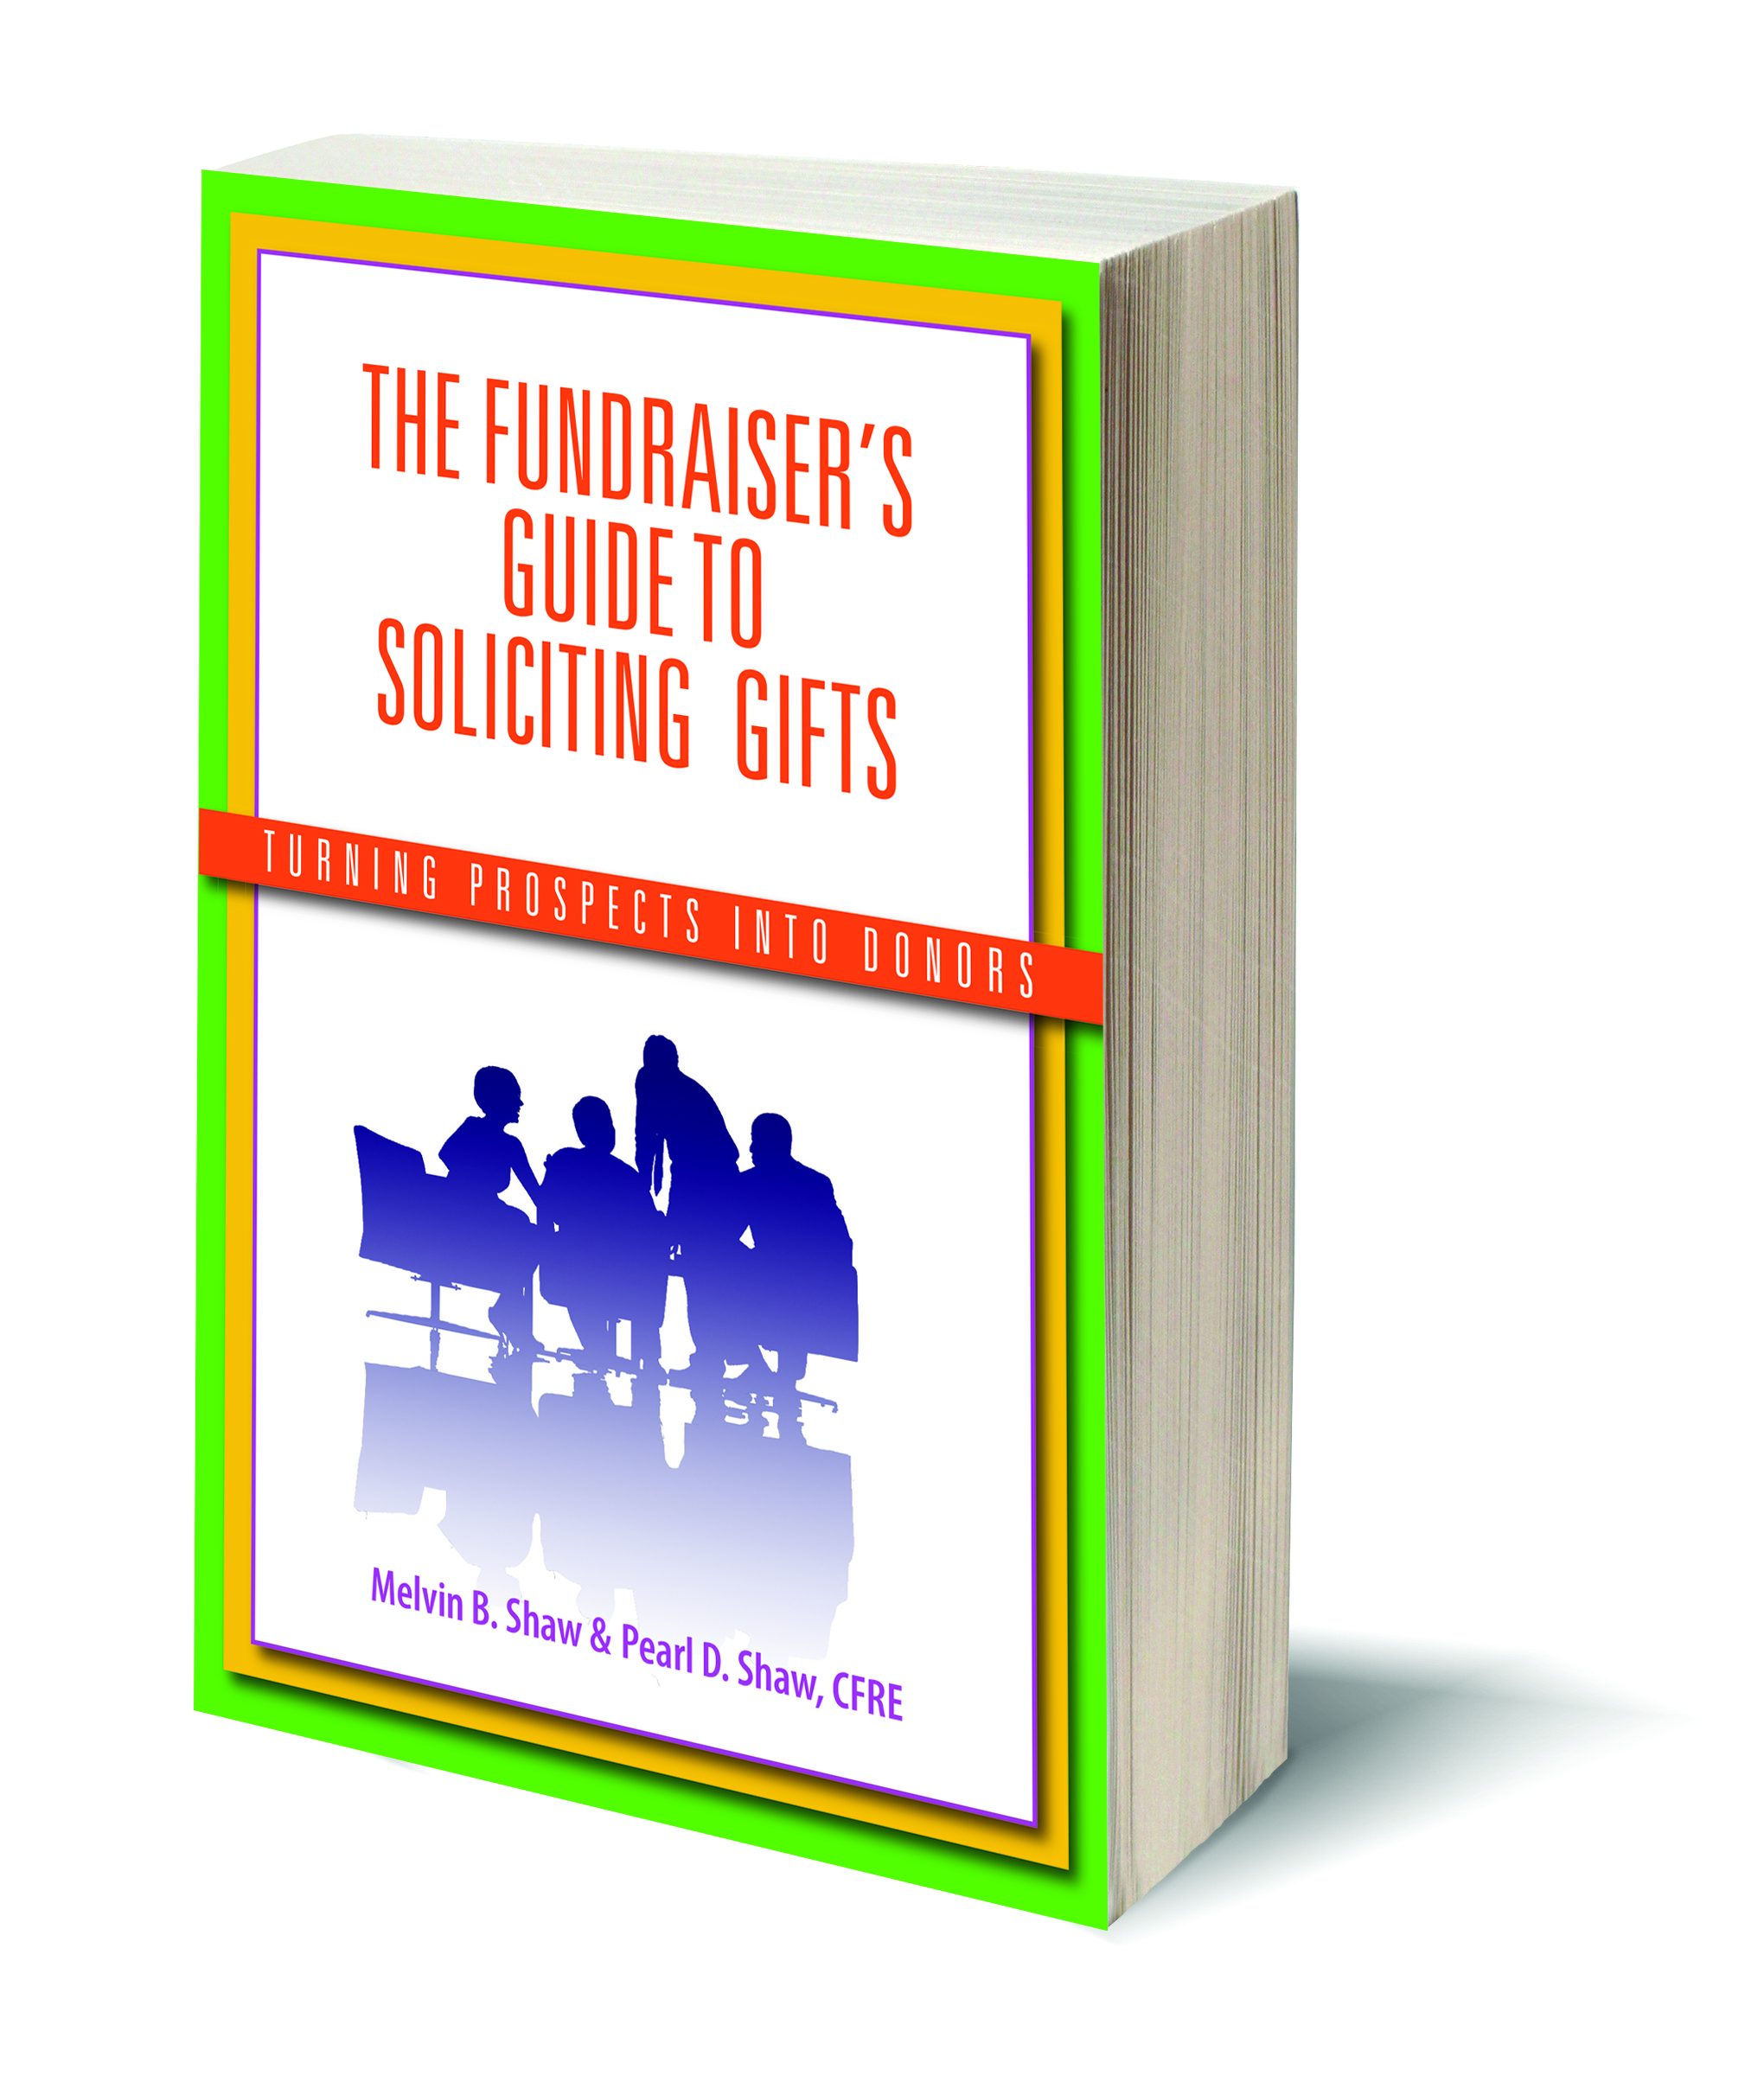 Fundraisers Guide